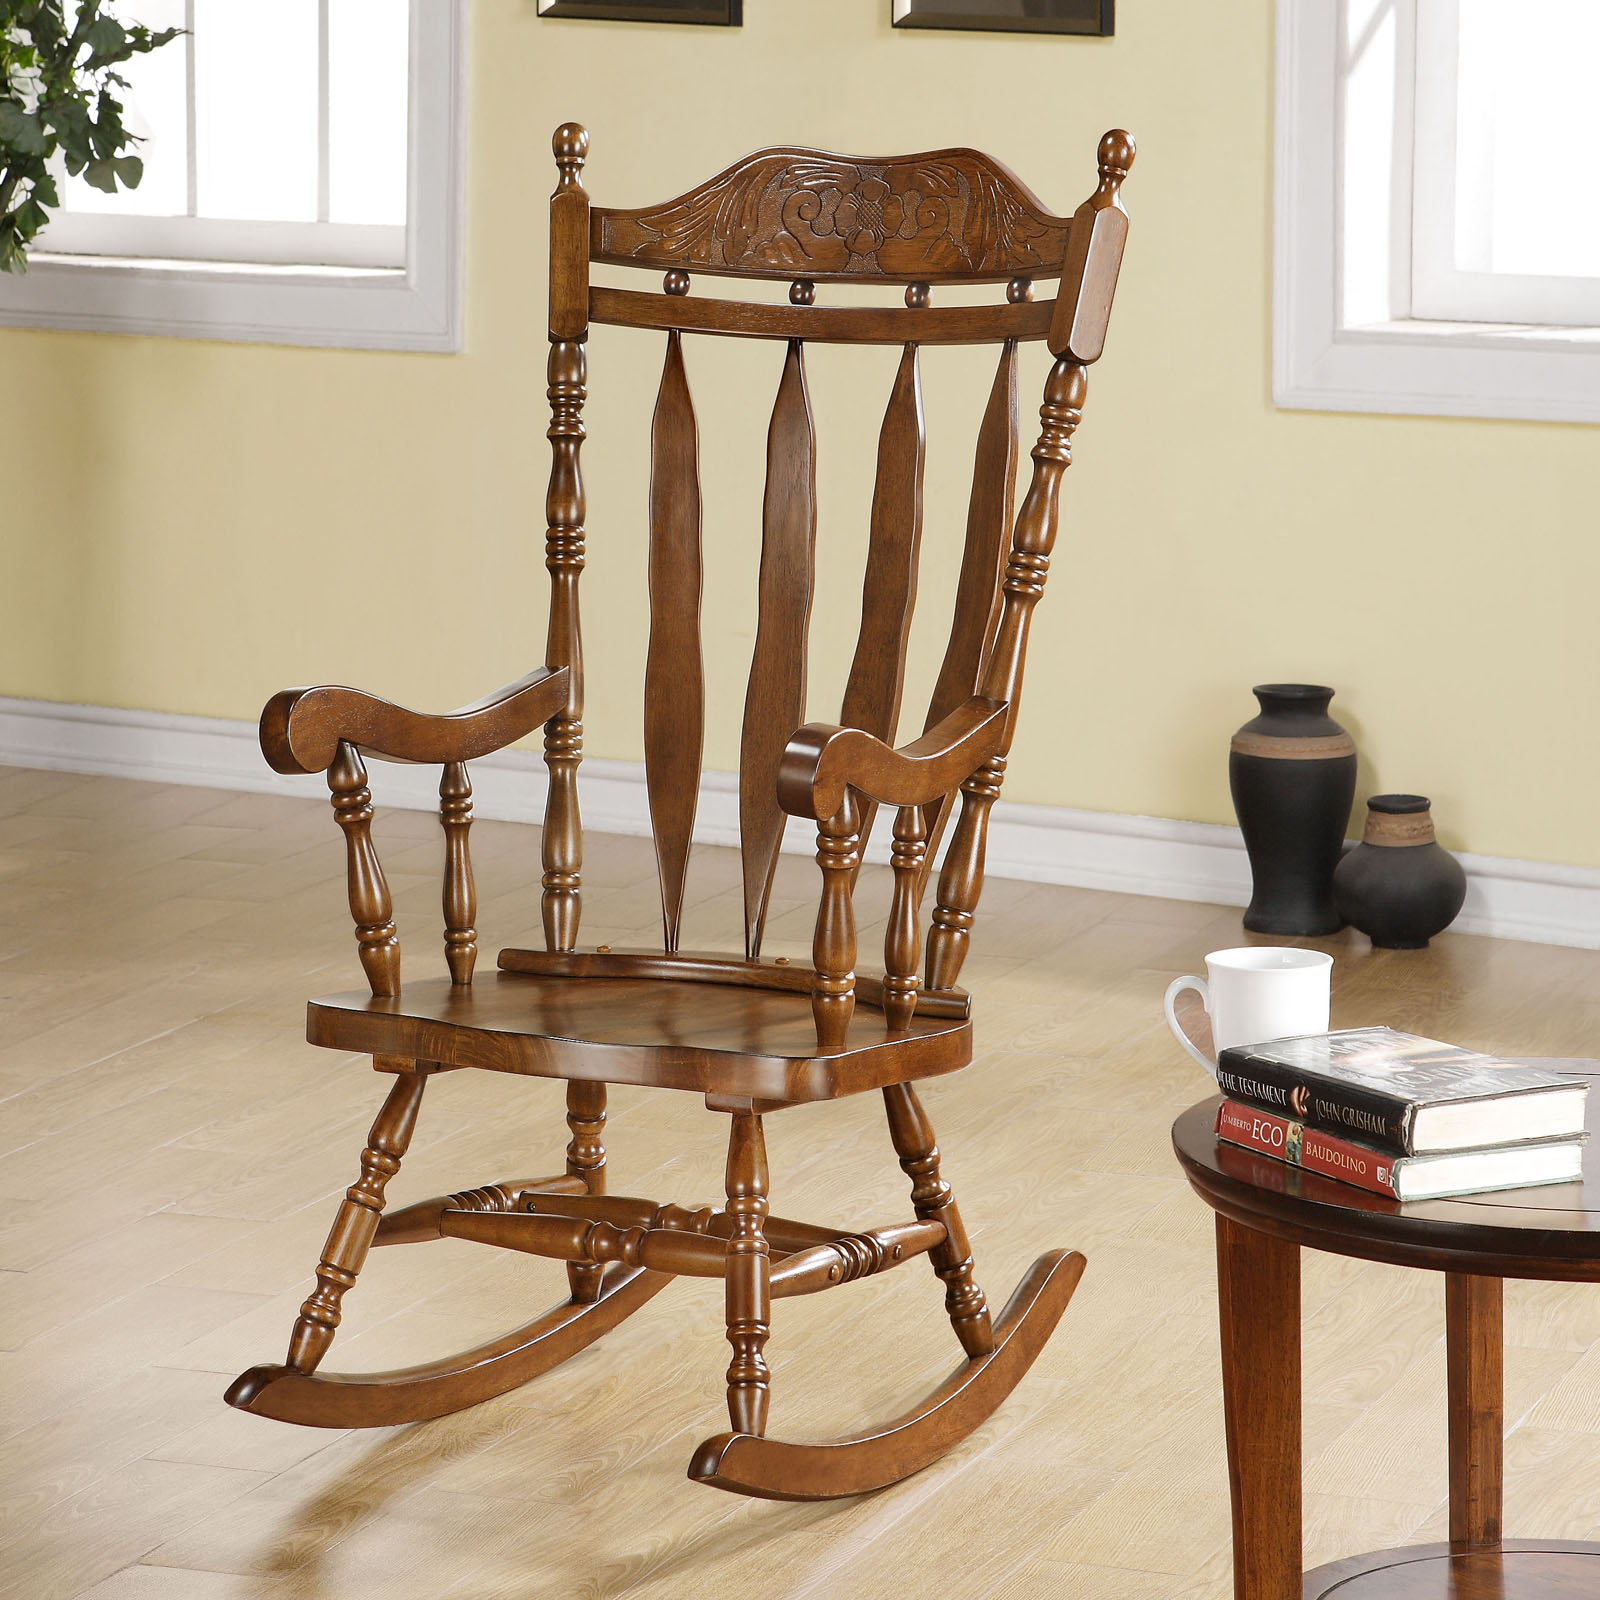 Picture of: Wooden Indoor Rocking Chairs Ideas On Foter